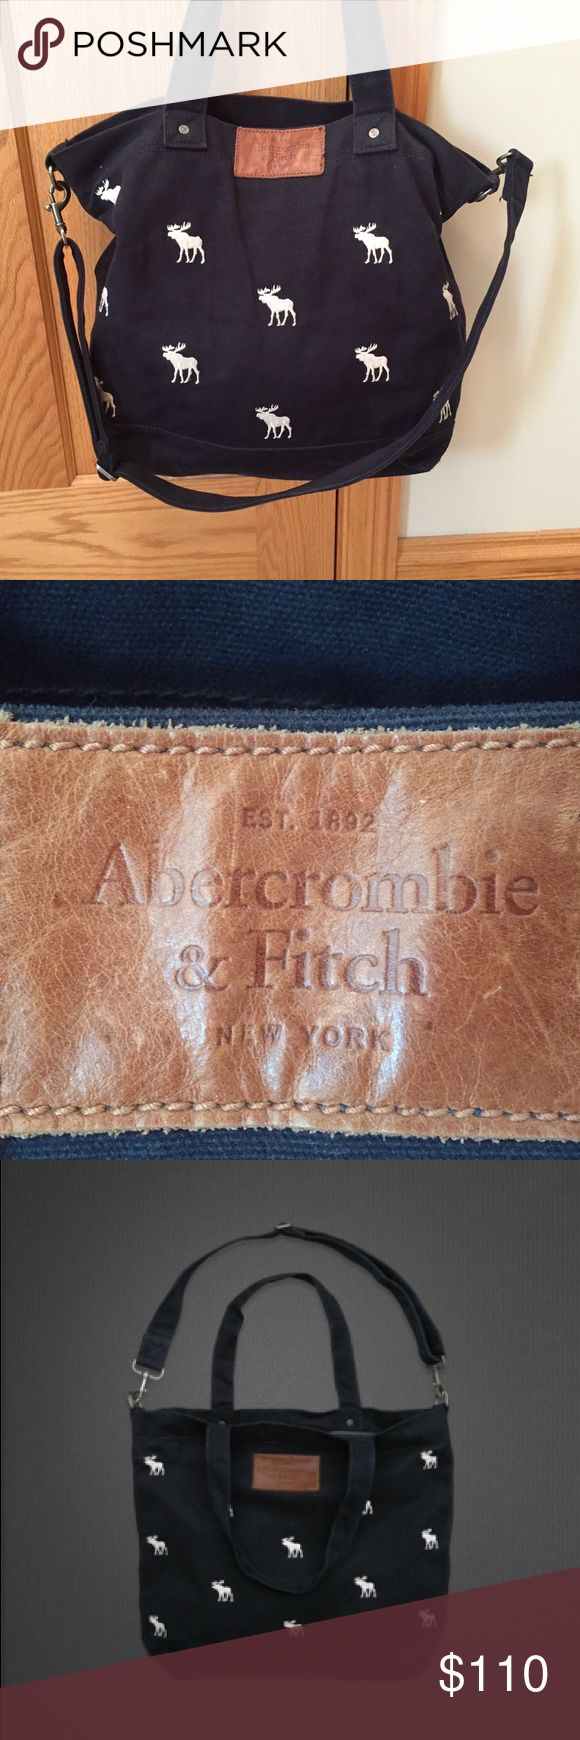 Abercrombie & Fitch Flagship Exclusive Tote Excellent condition. Lining is very clean. Moose pattern all over front and back of bag. Inside pocket. Crossbody strap. Zip closure. Open to reasonable offers. Abercrombie & Fitch Bags Totes